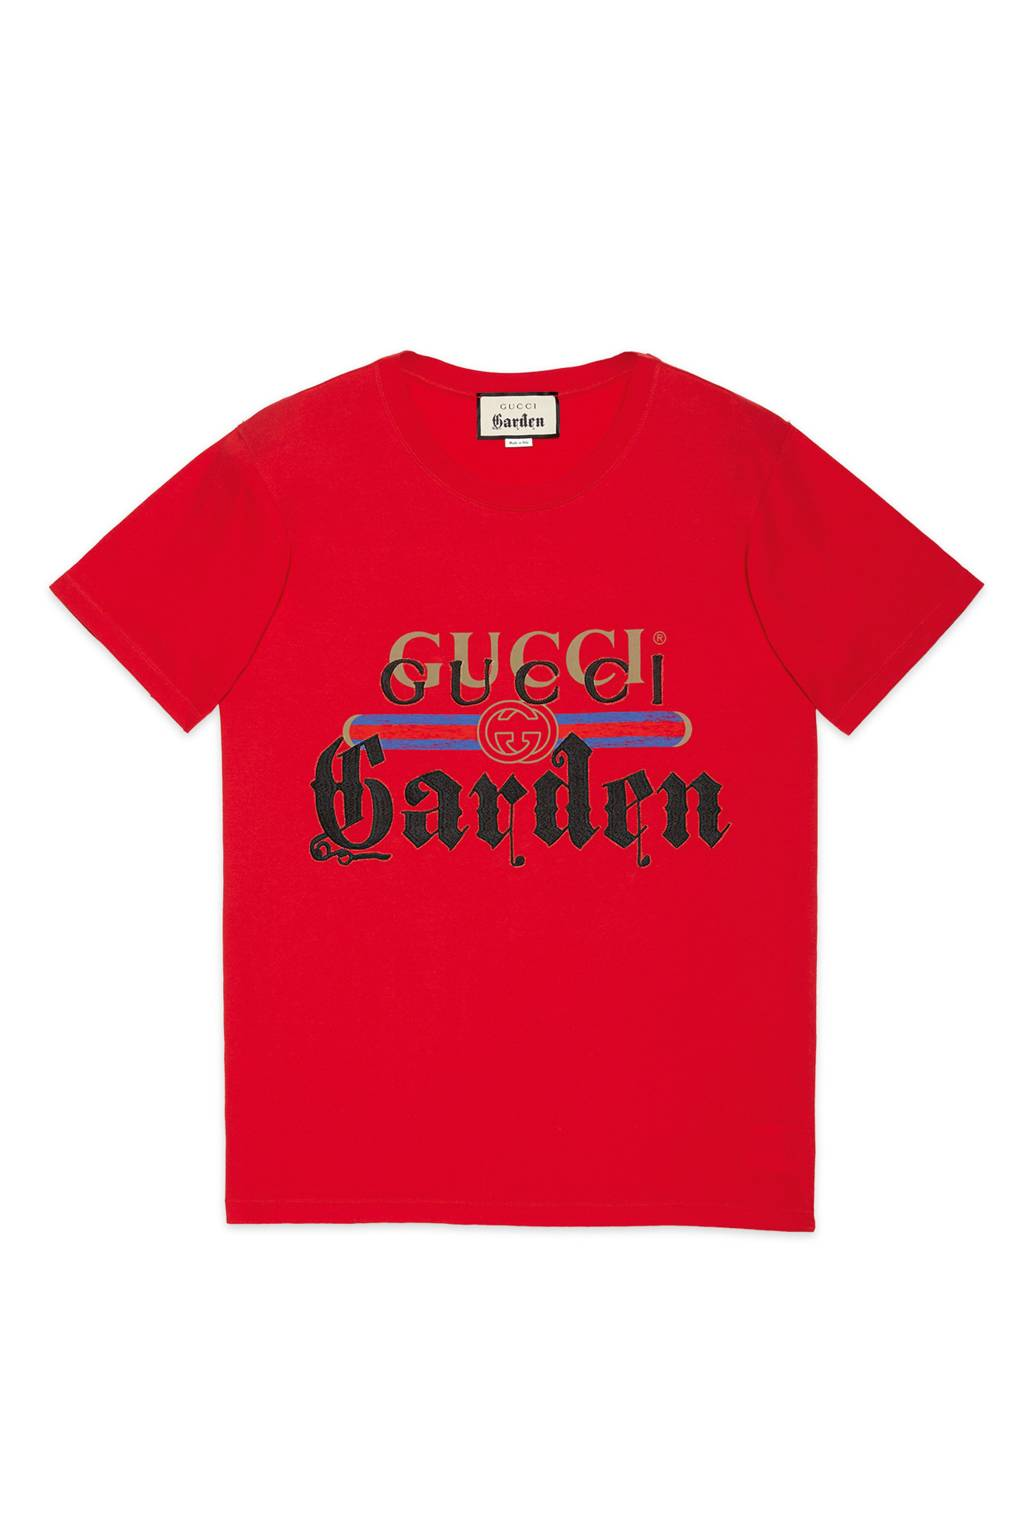 20fc024a141 Gucci Garden  what to buy